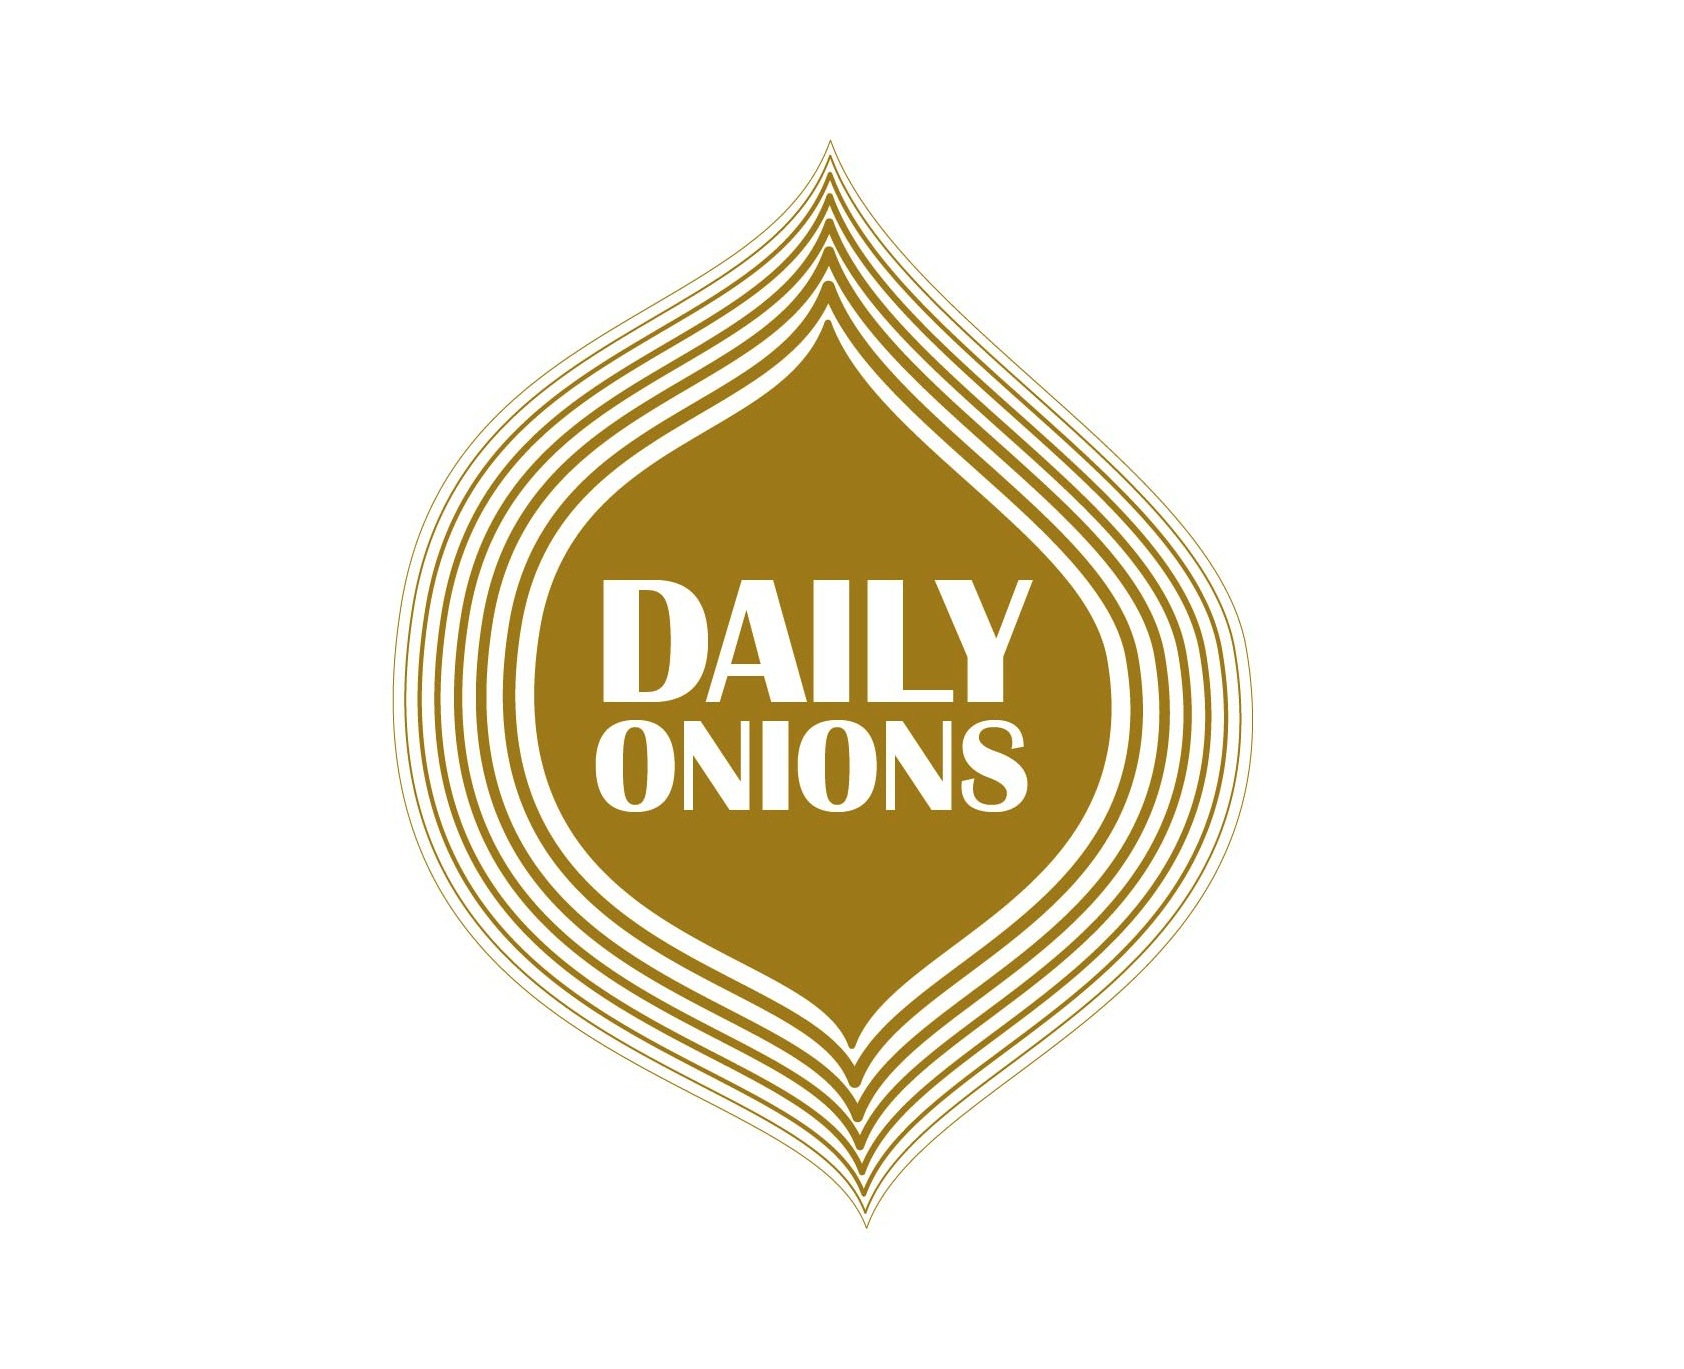 Daily Onions